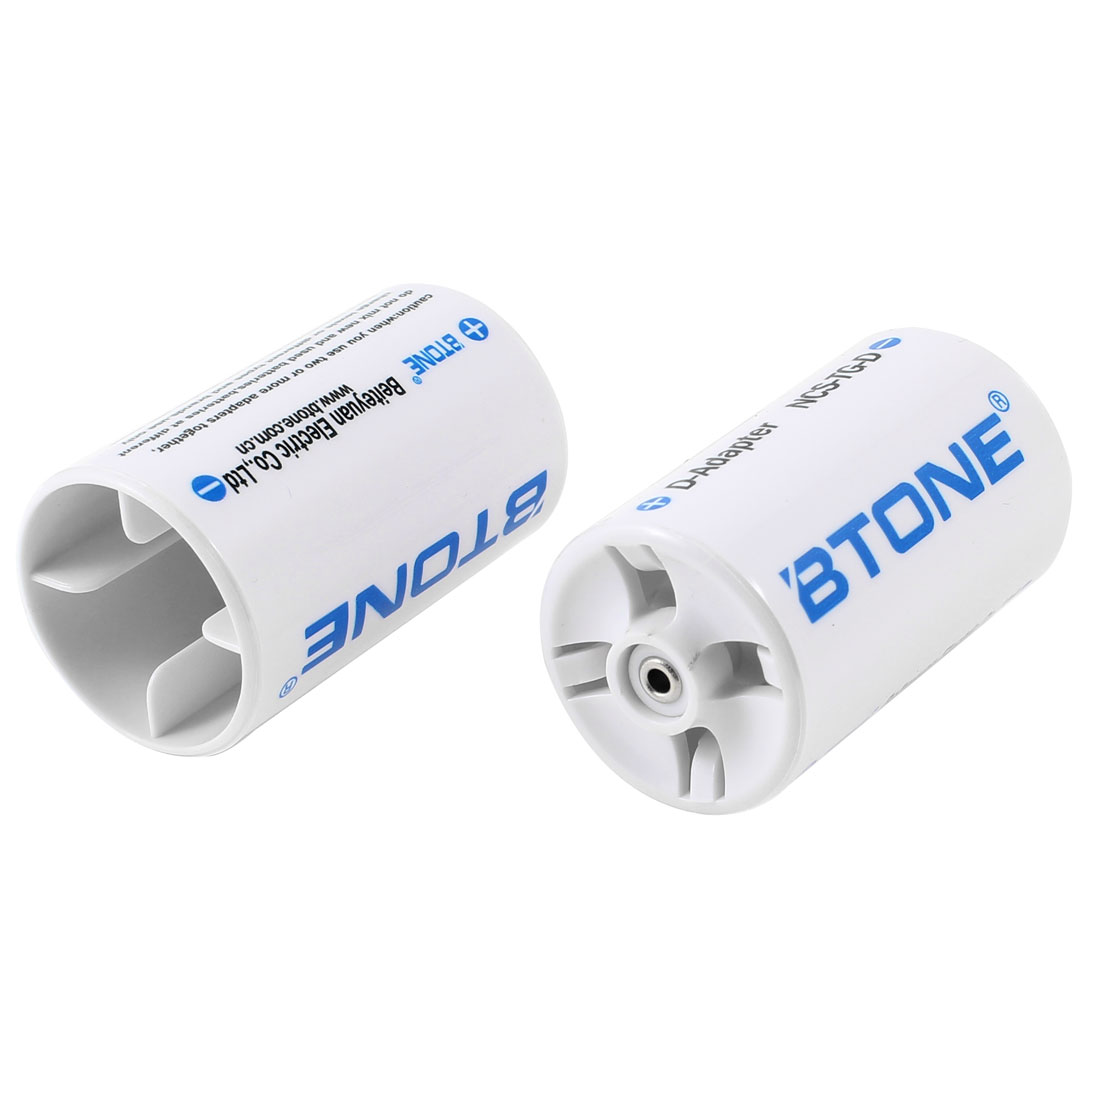 2pcs Round Design White Plastic Parallel Connection Battery AA to D Size Adapter Converter Case Holder